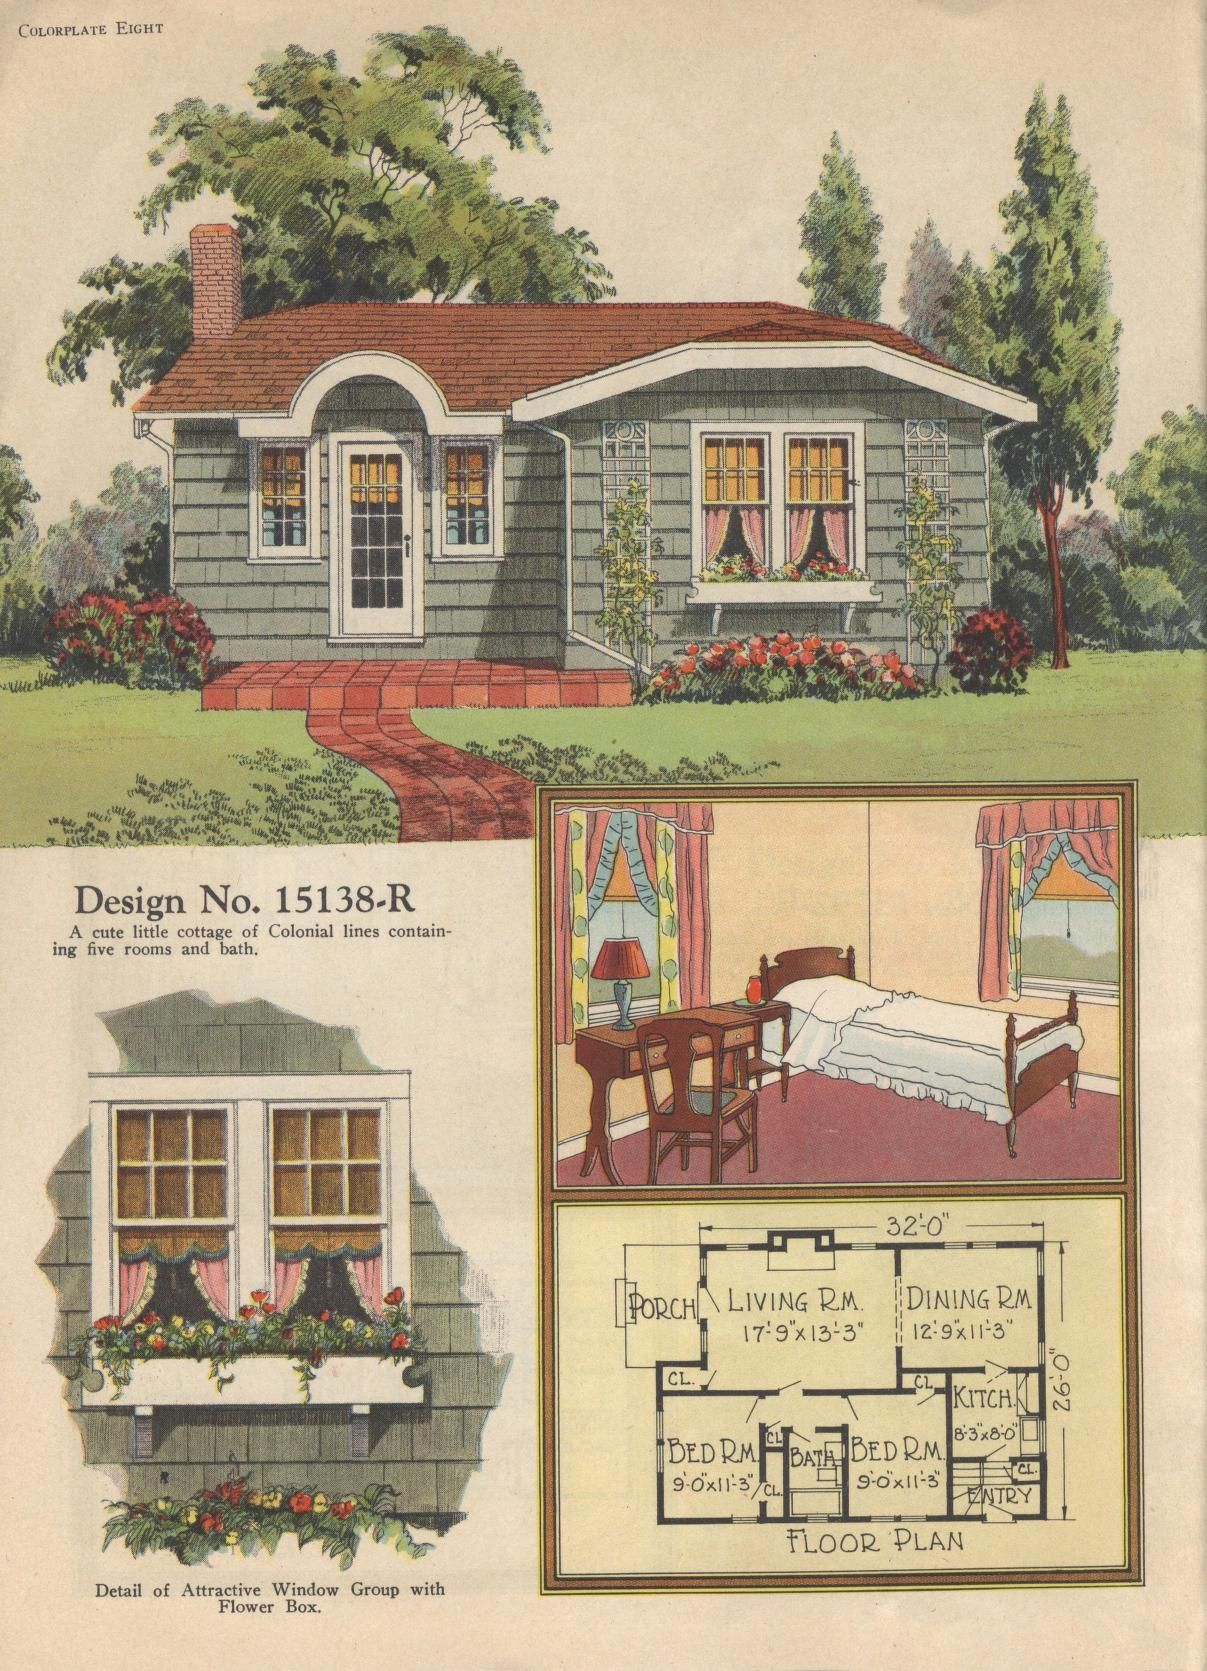 Bedroom 2 bathroom craftsman style 1920 s bungalow in atlanta s hot - Colorkeed Home Plans Radford 1920s